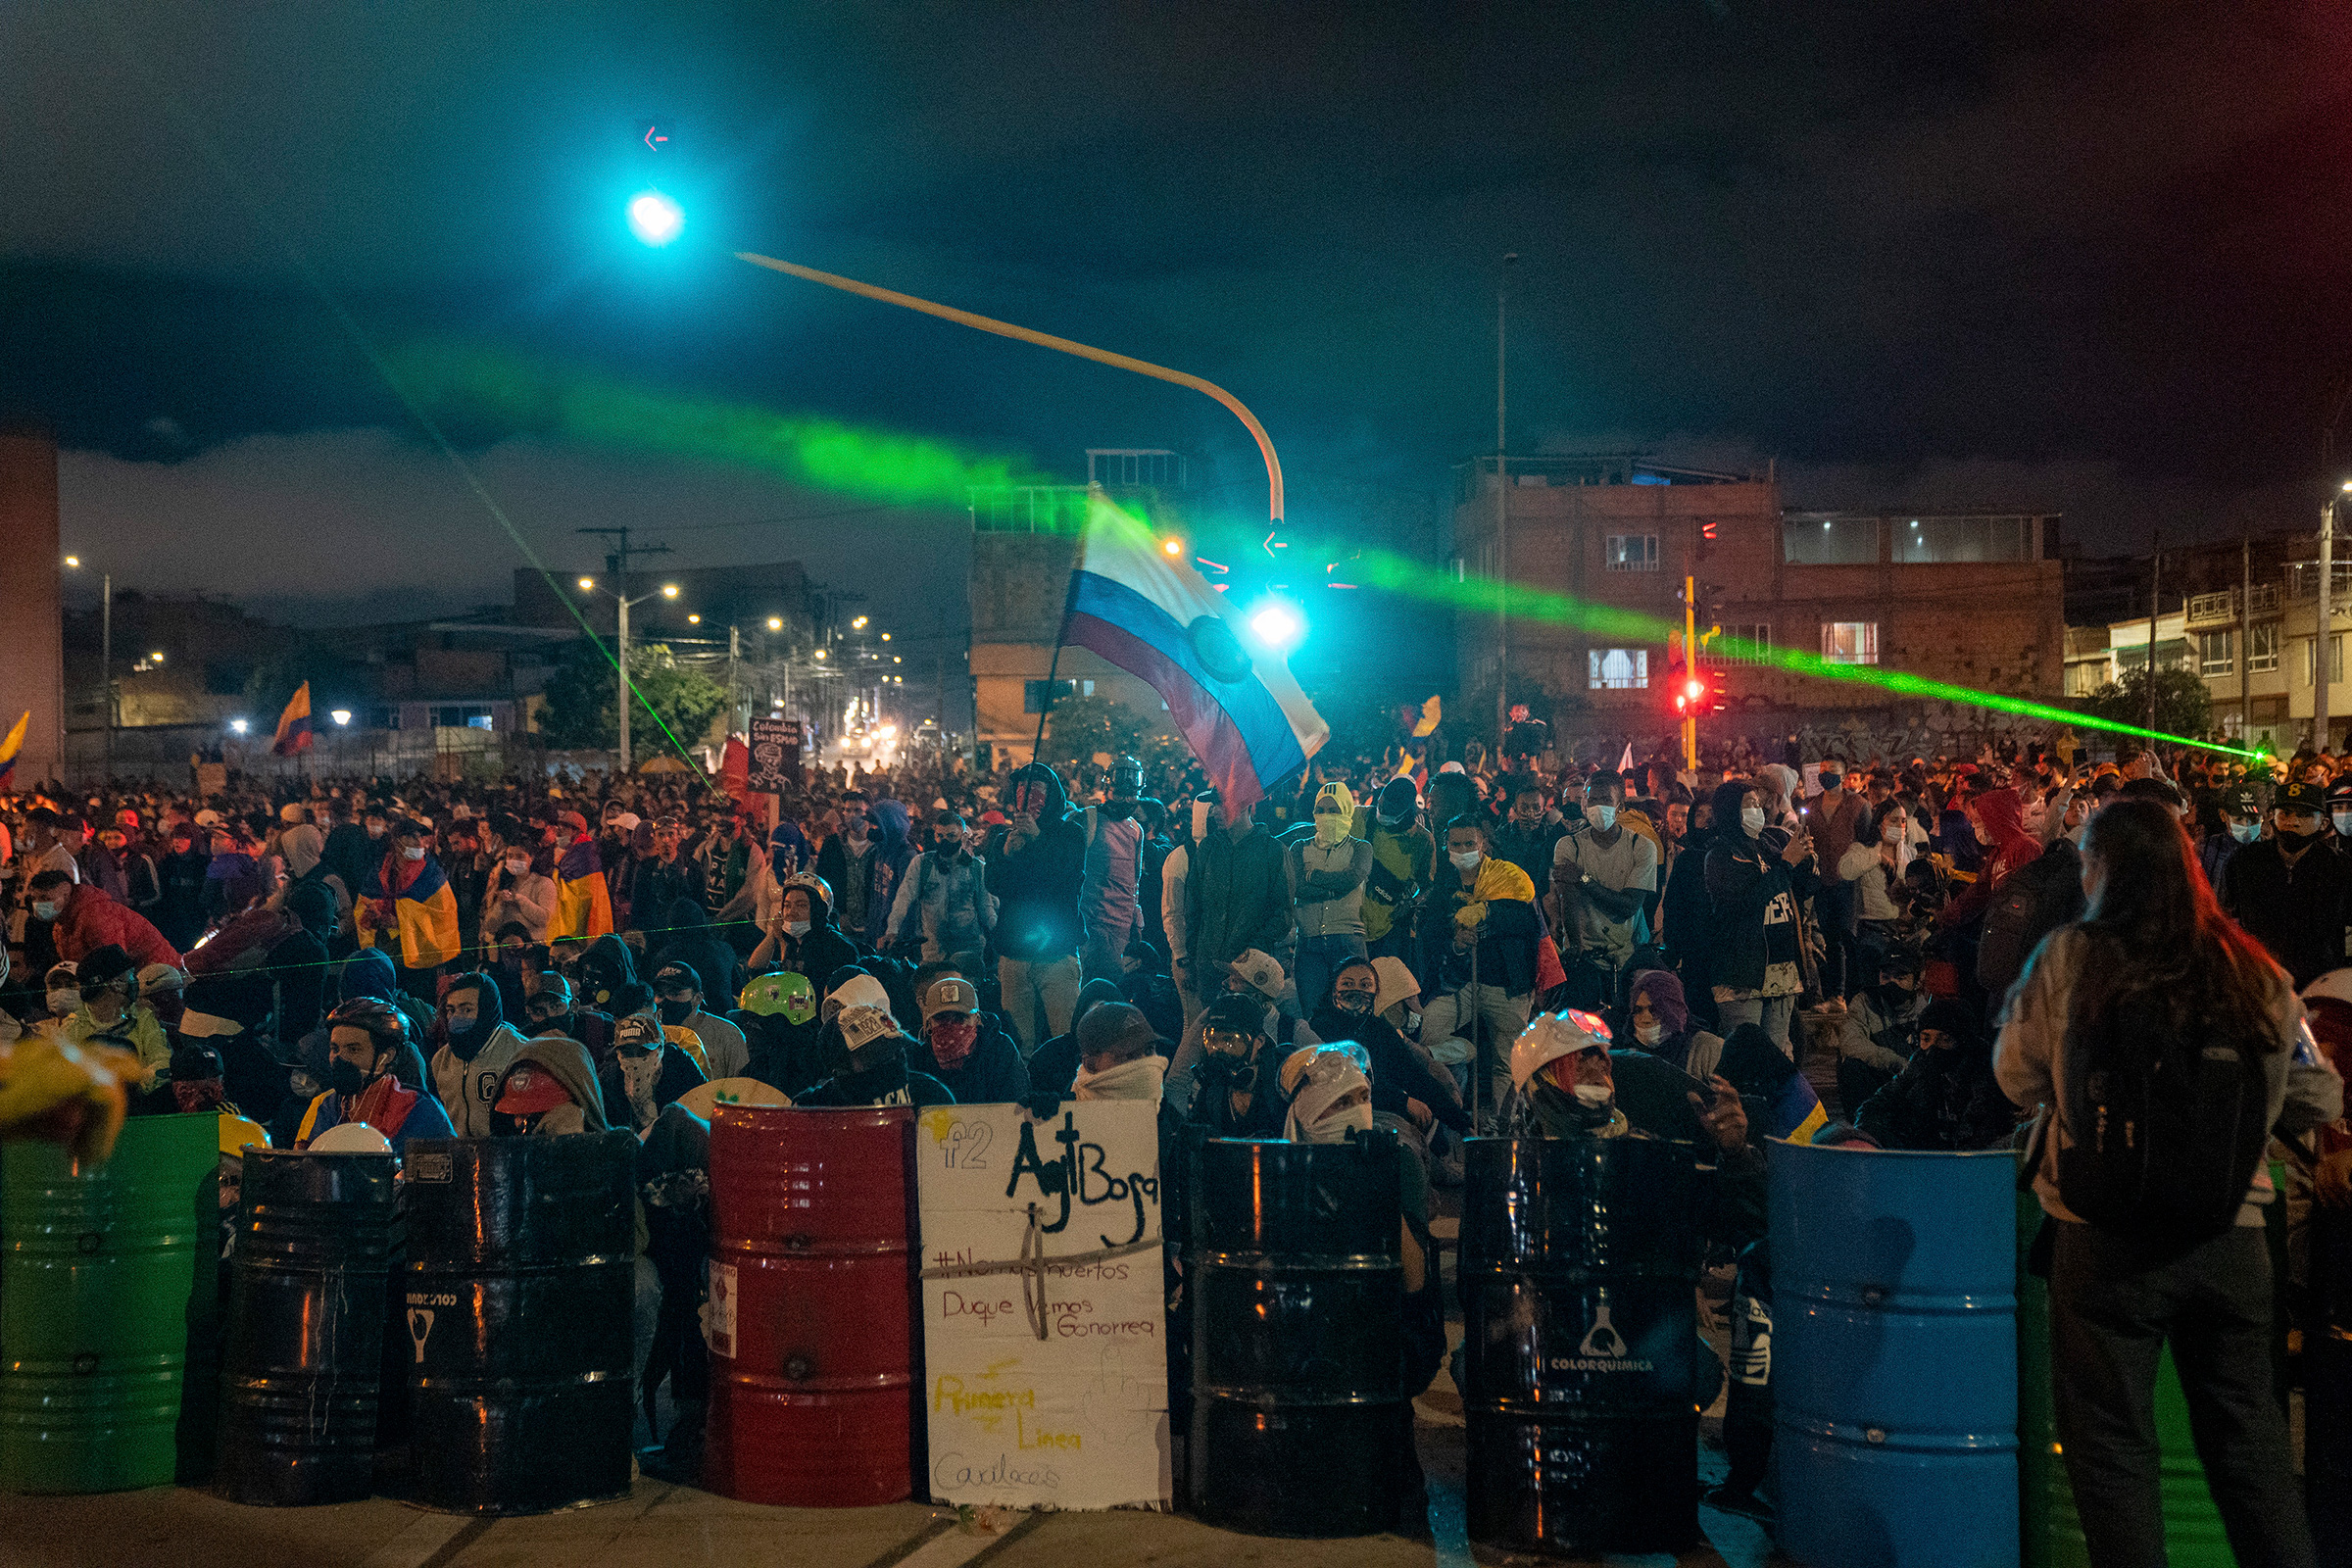 Demonstrators gather on a street in Bogota on May 12. Demonstrations that began two weeks ago as anger over pandemic-related tax reforms have intensified and spread, turning into a collective howl of outrage over abuses by the national police force.